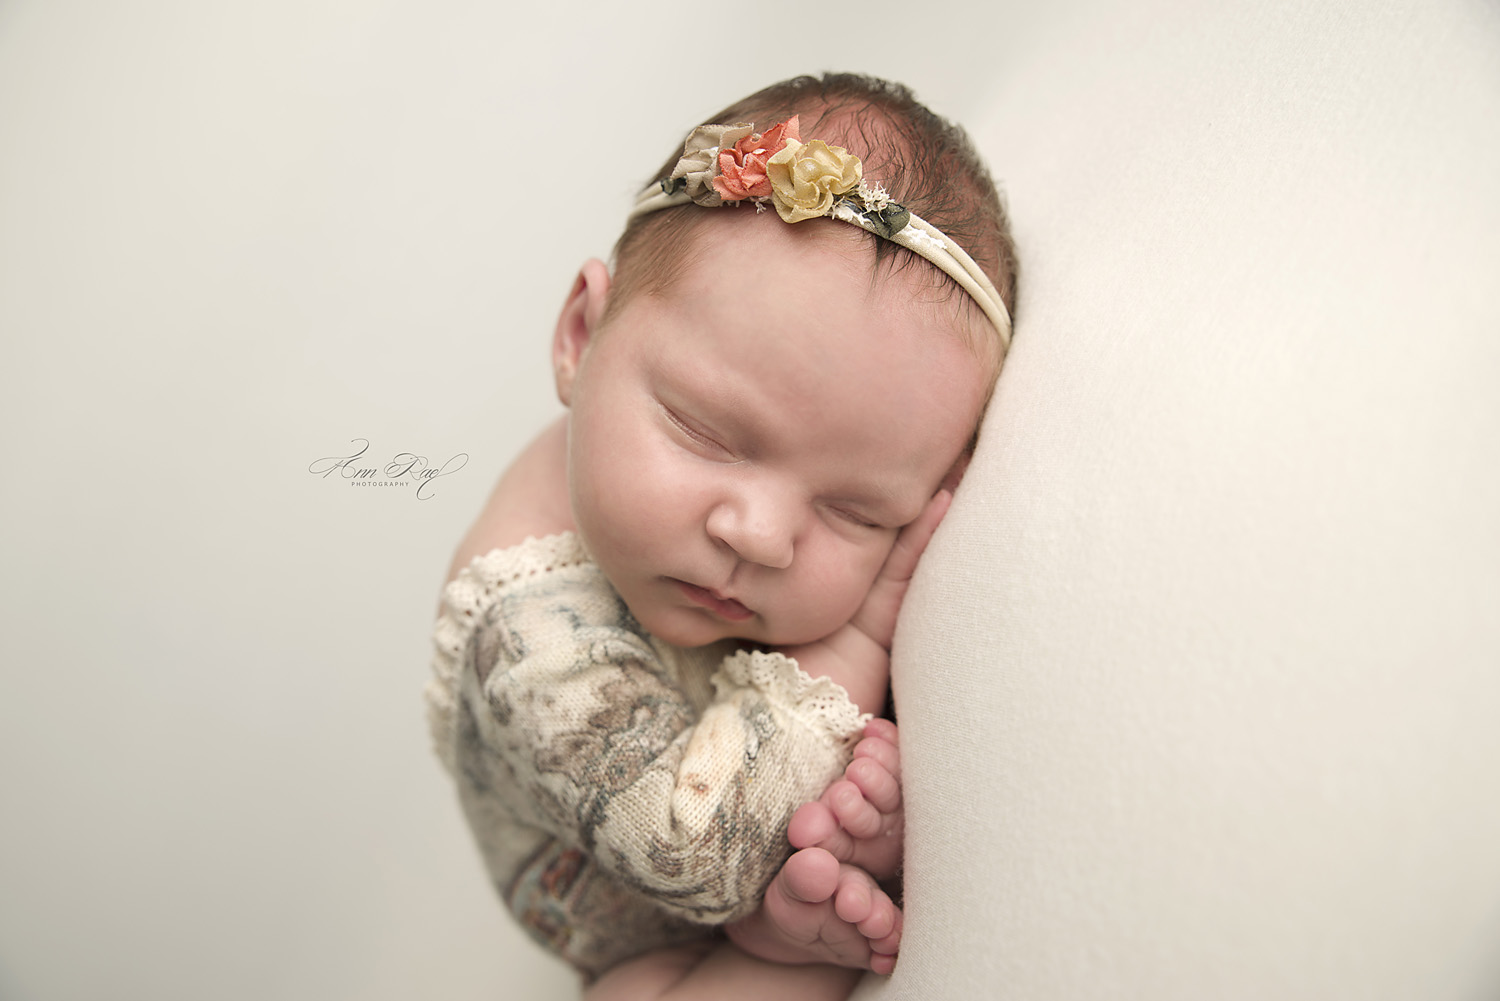 Newborn Portfolio image with floral outfit